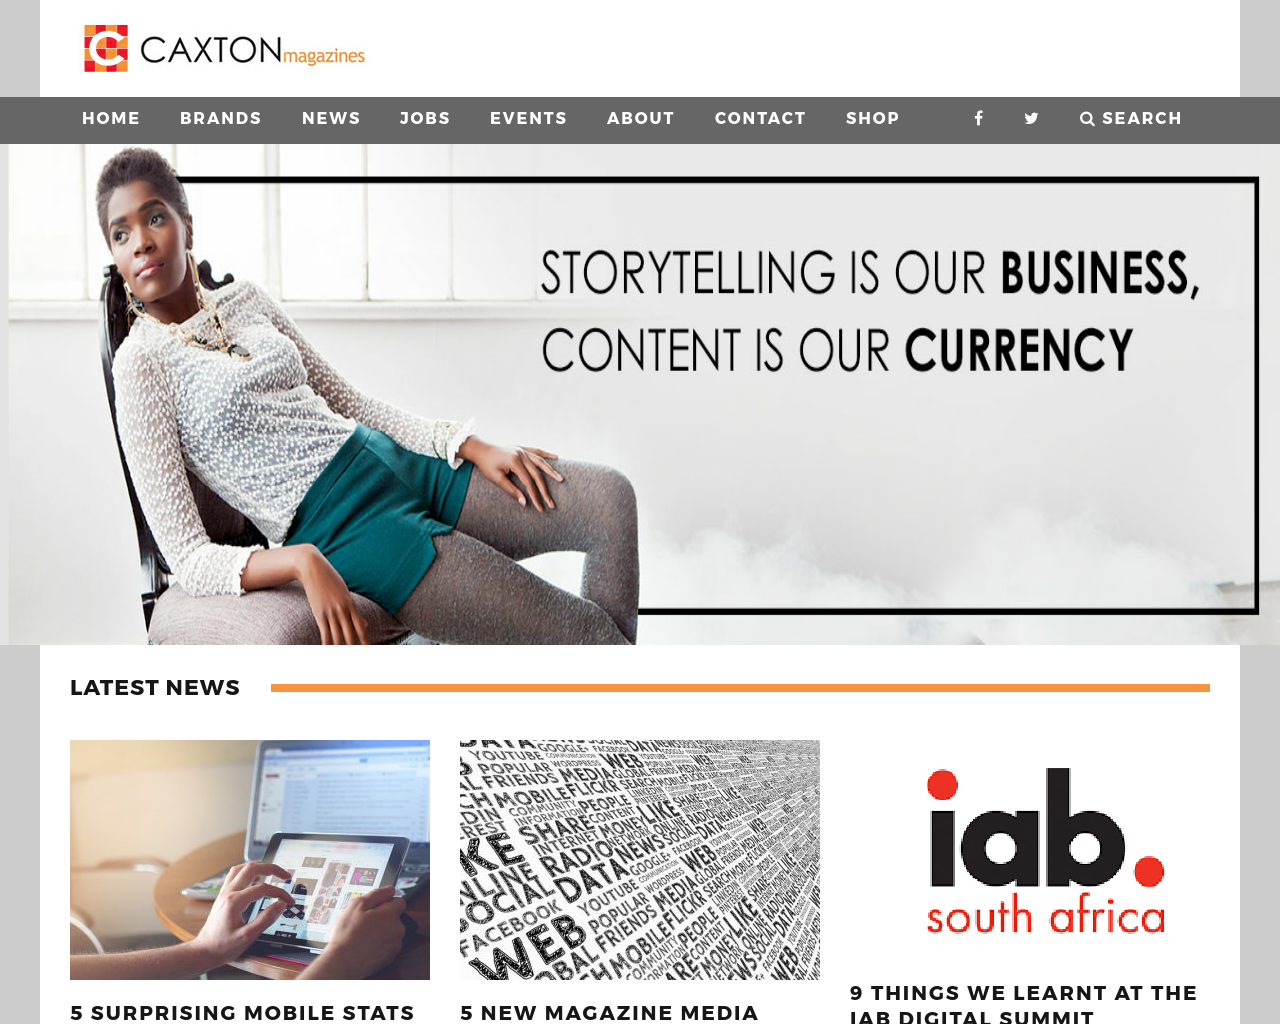 Caxton-Magazines-Advertising-Reviews-Pricing